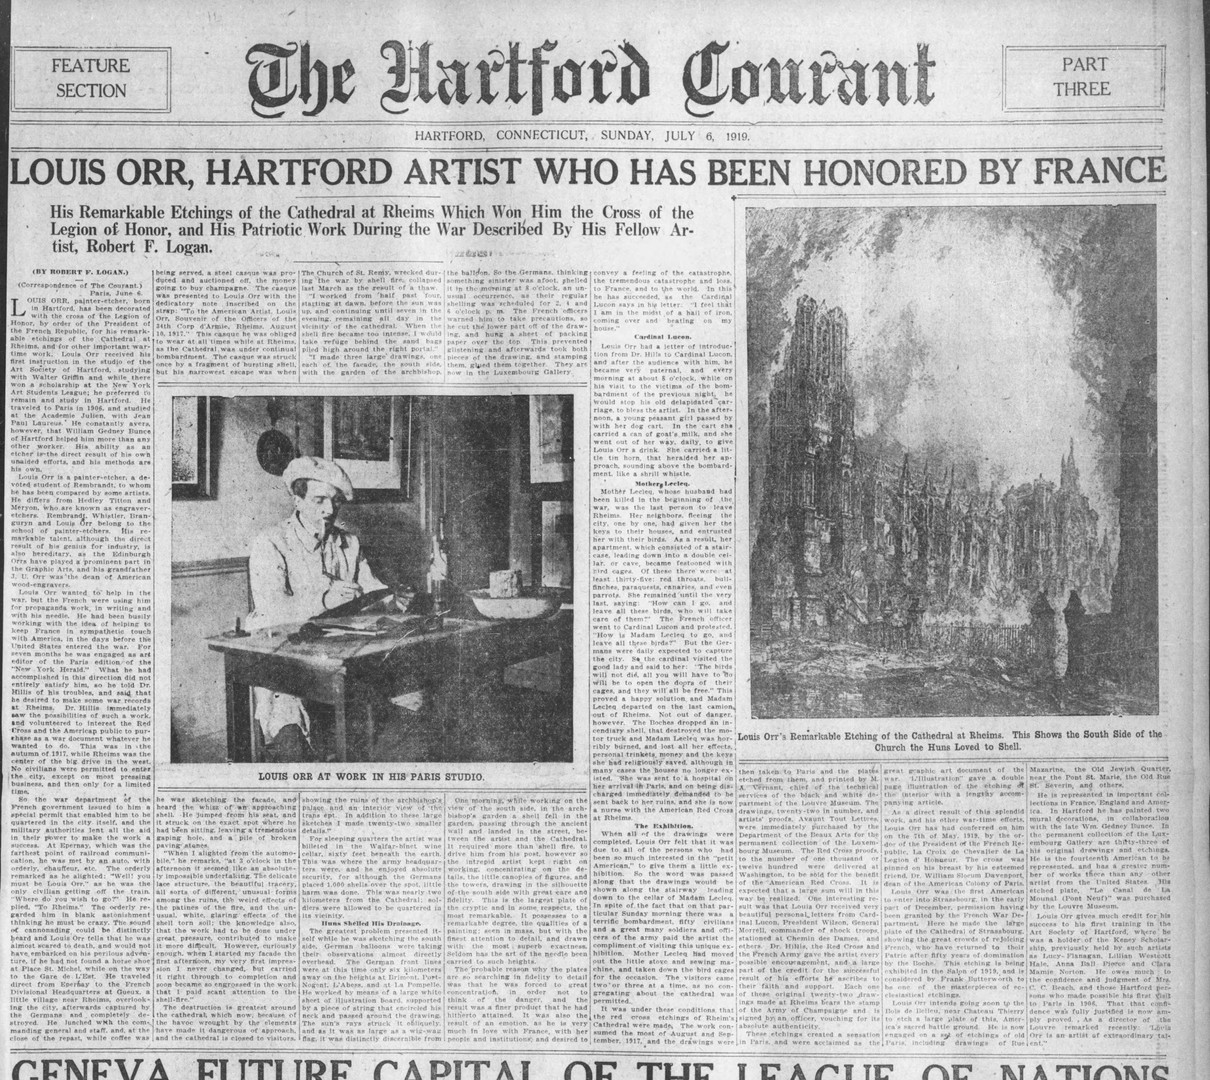 """Louis Orr, Hartford Artist Who Has Been Honored by France"" The Hartford Courant, July 6, 1919"